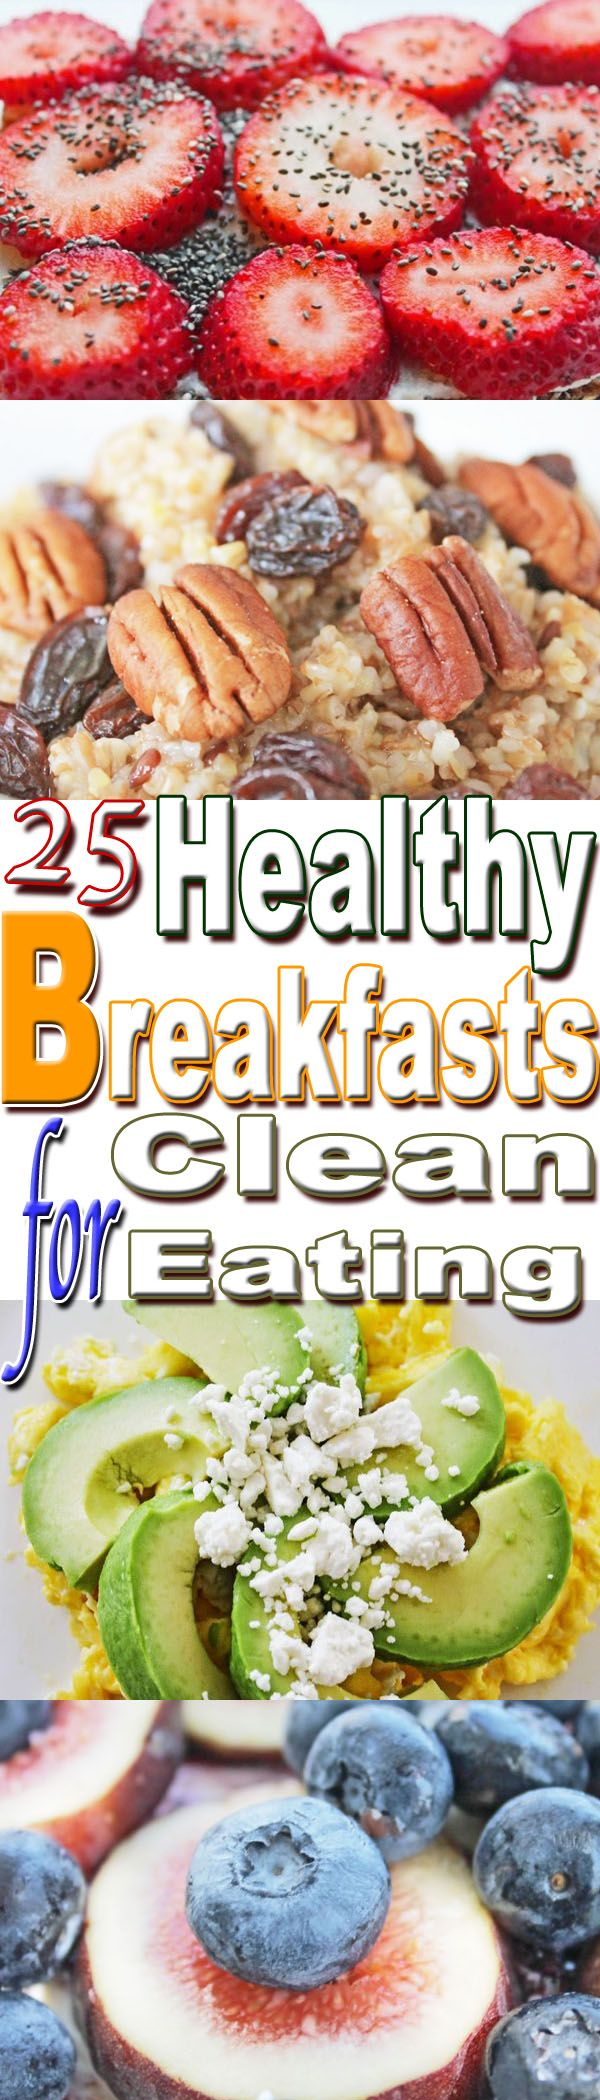 25 healthy breakfast options for eat clean diet.